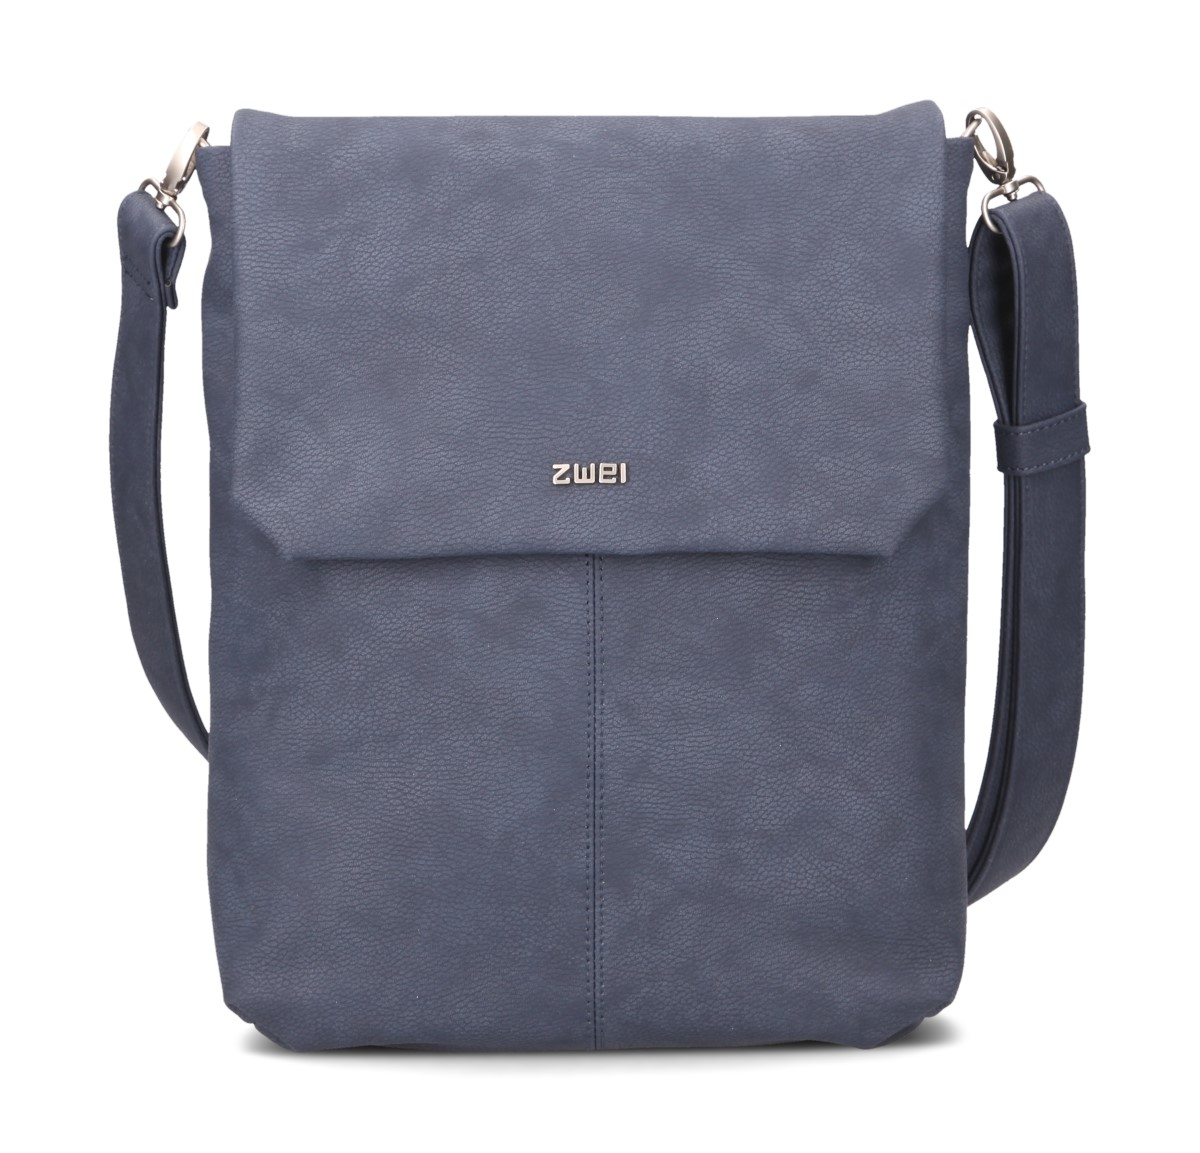 M100 - bag with interchangeable shoulder straps